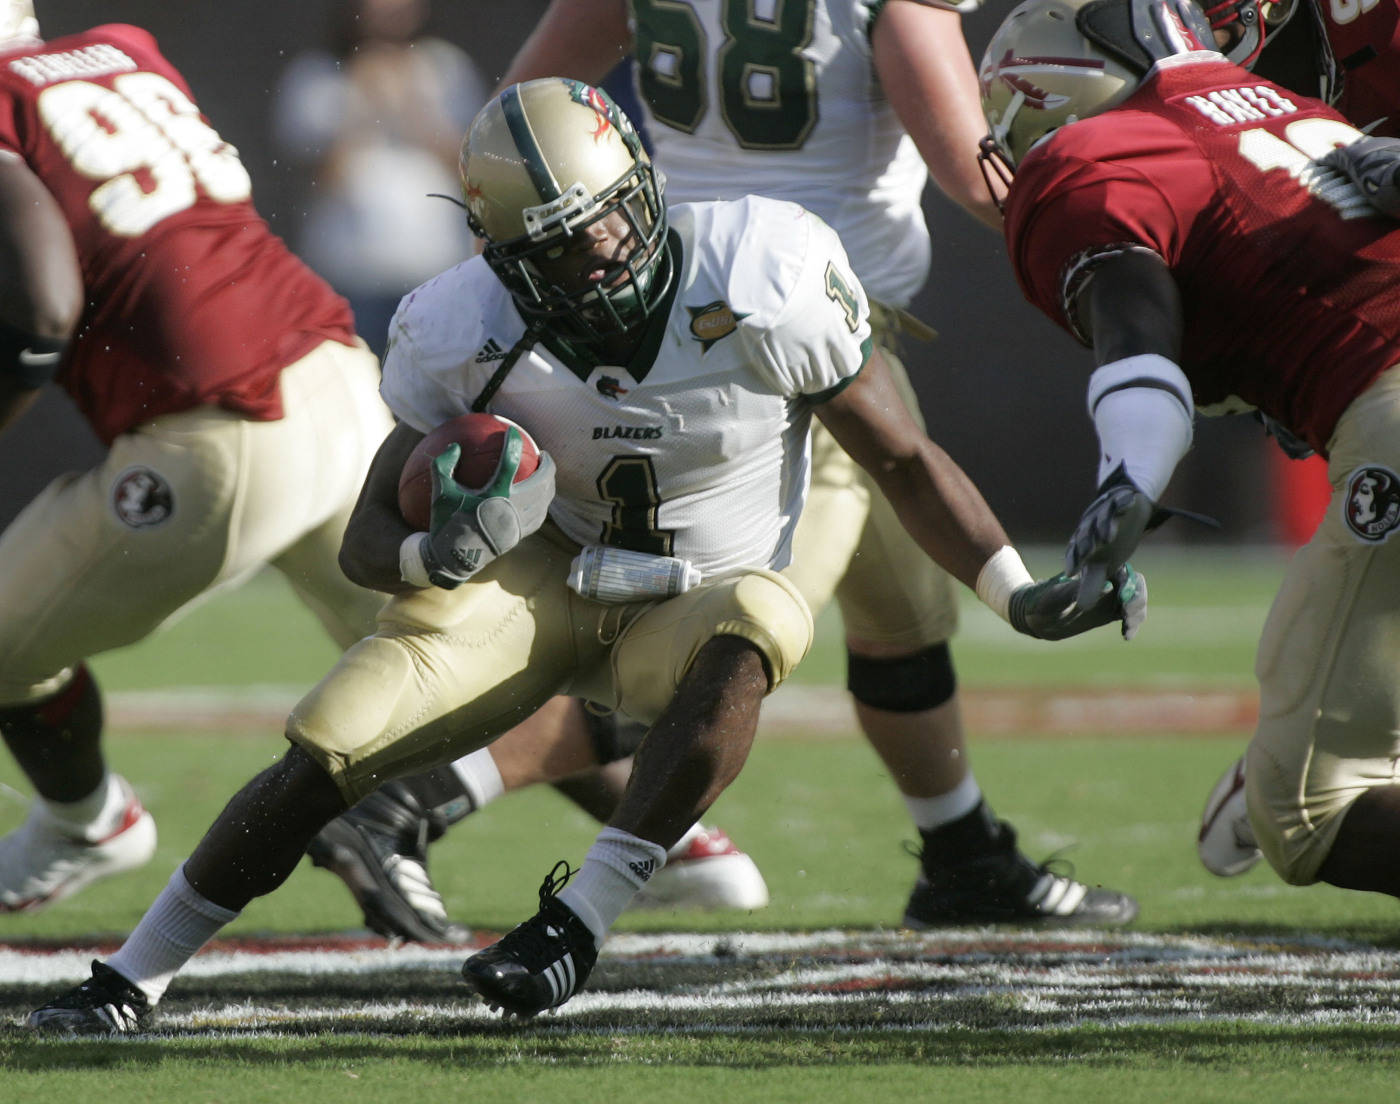 UAB running back Rashaud Slaughter, left, runs for second-quarter yardage as Florida State's Geno Hayes, right, moves in to make the tackle during a football game Saturday, Sept. 8, 2007, in Tallahassee, Fla. (AP Photo/Phil Coale)